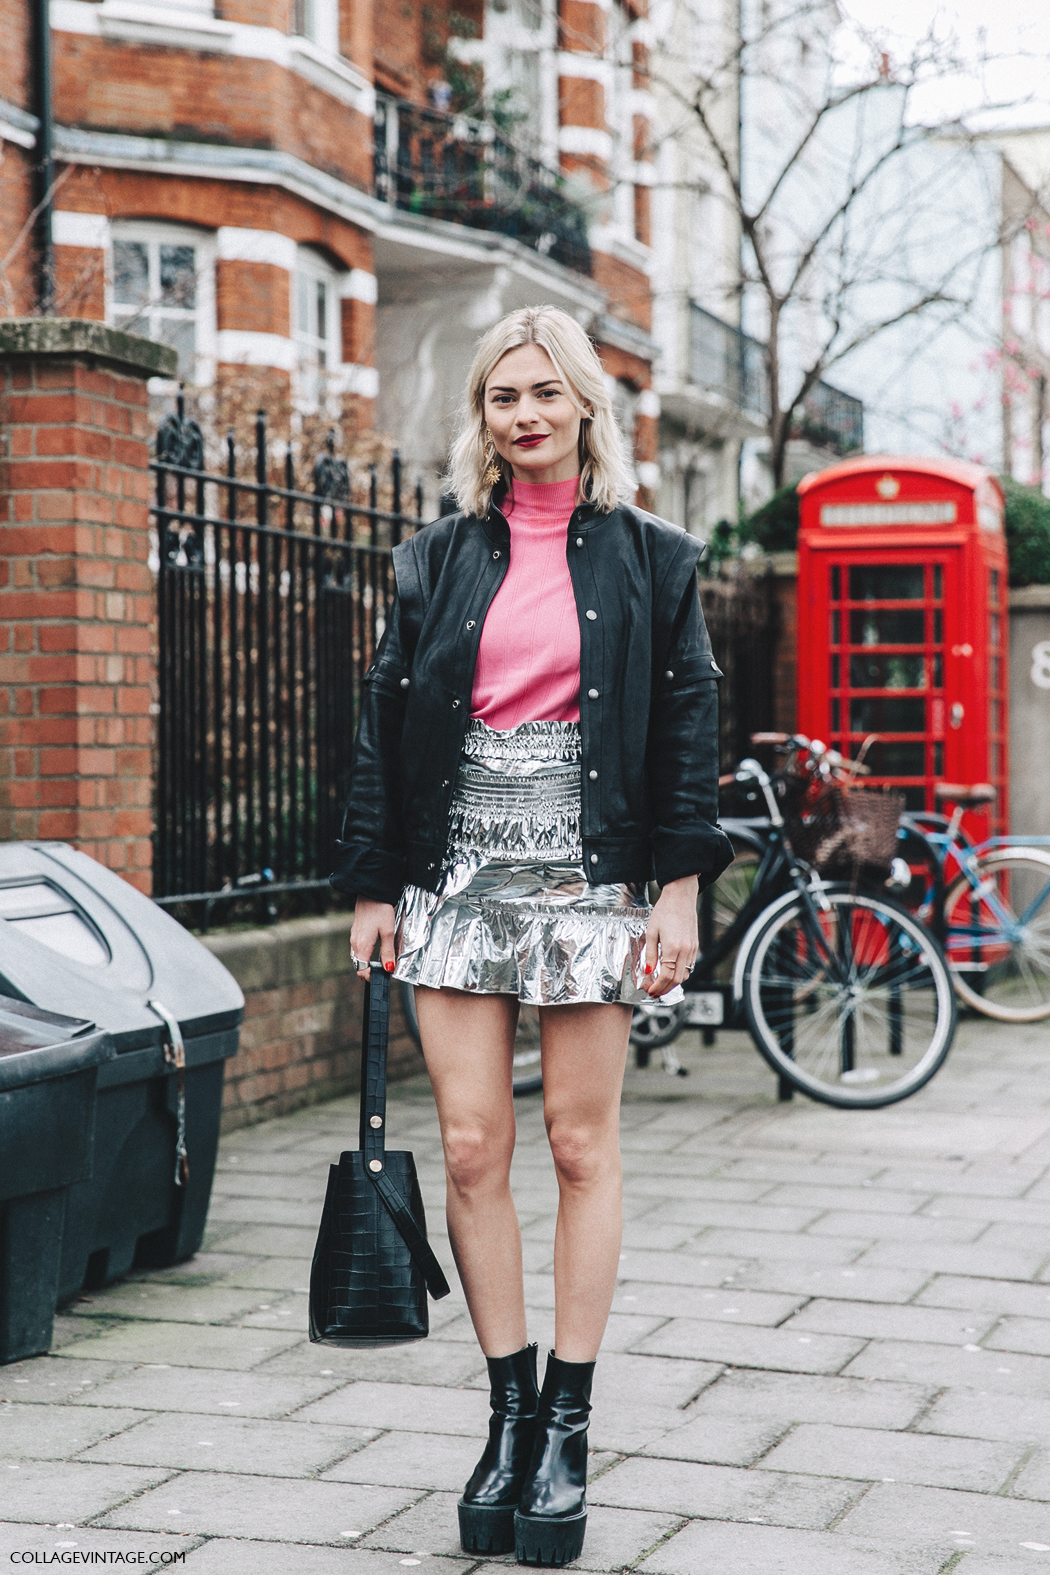 LFW-London_Fashion_Week_Fall_16-Street_Style-Collage_Vintage-Pandora_Sykes-Metallic_Skirt-Biker_Jacket-Pink_Sweater-5